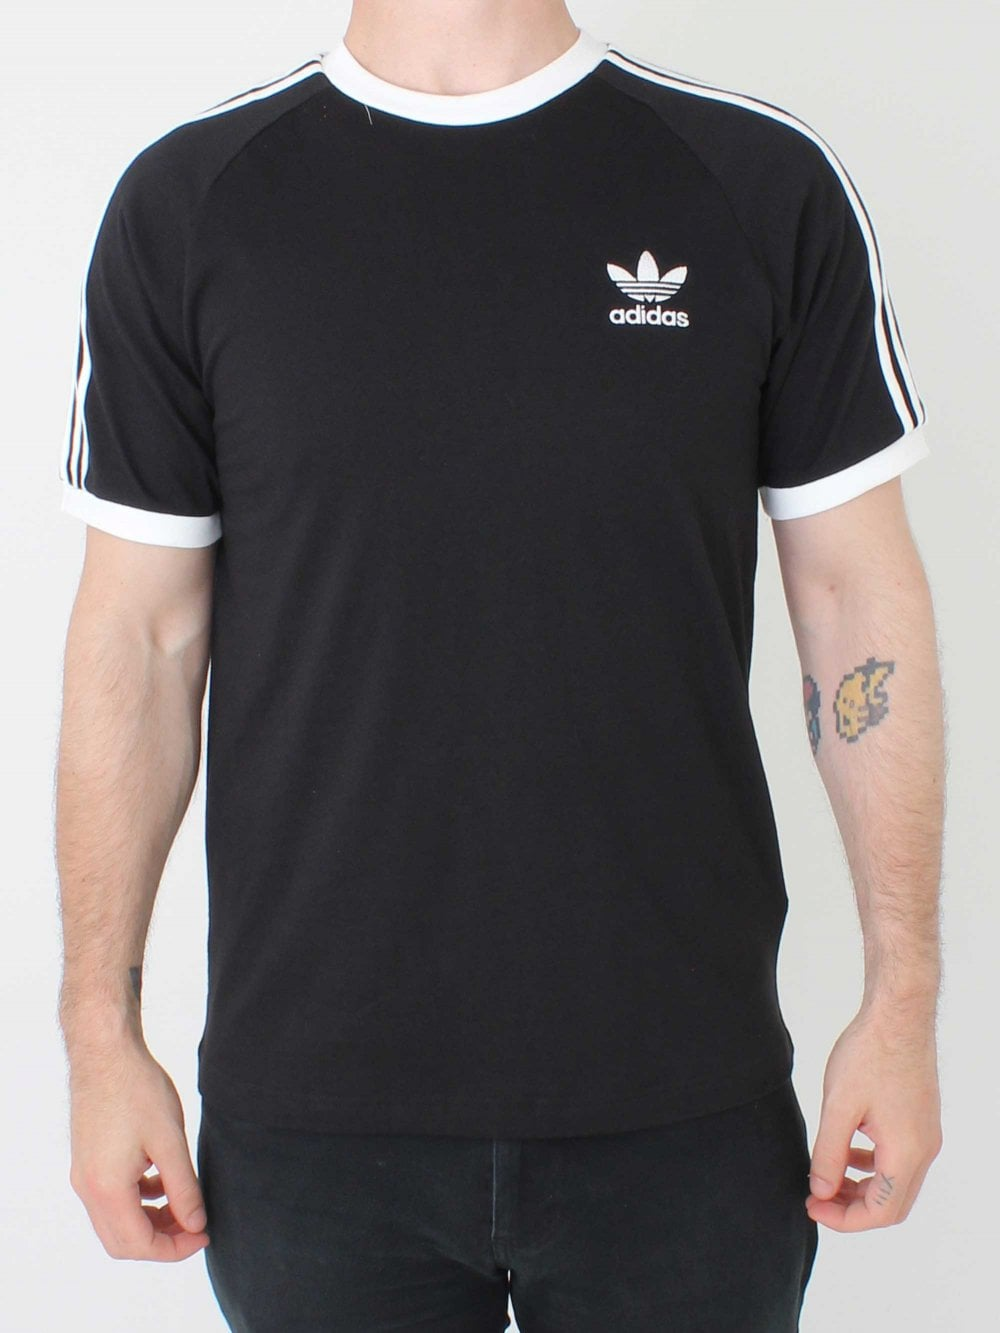 f090279935b Adidas 3 Stripes T.shirt in Black | Northern Threads